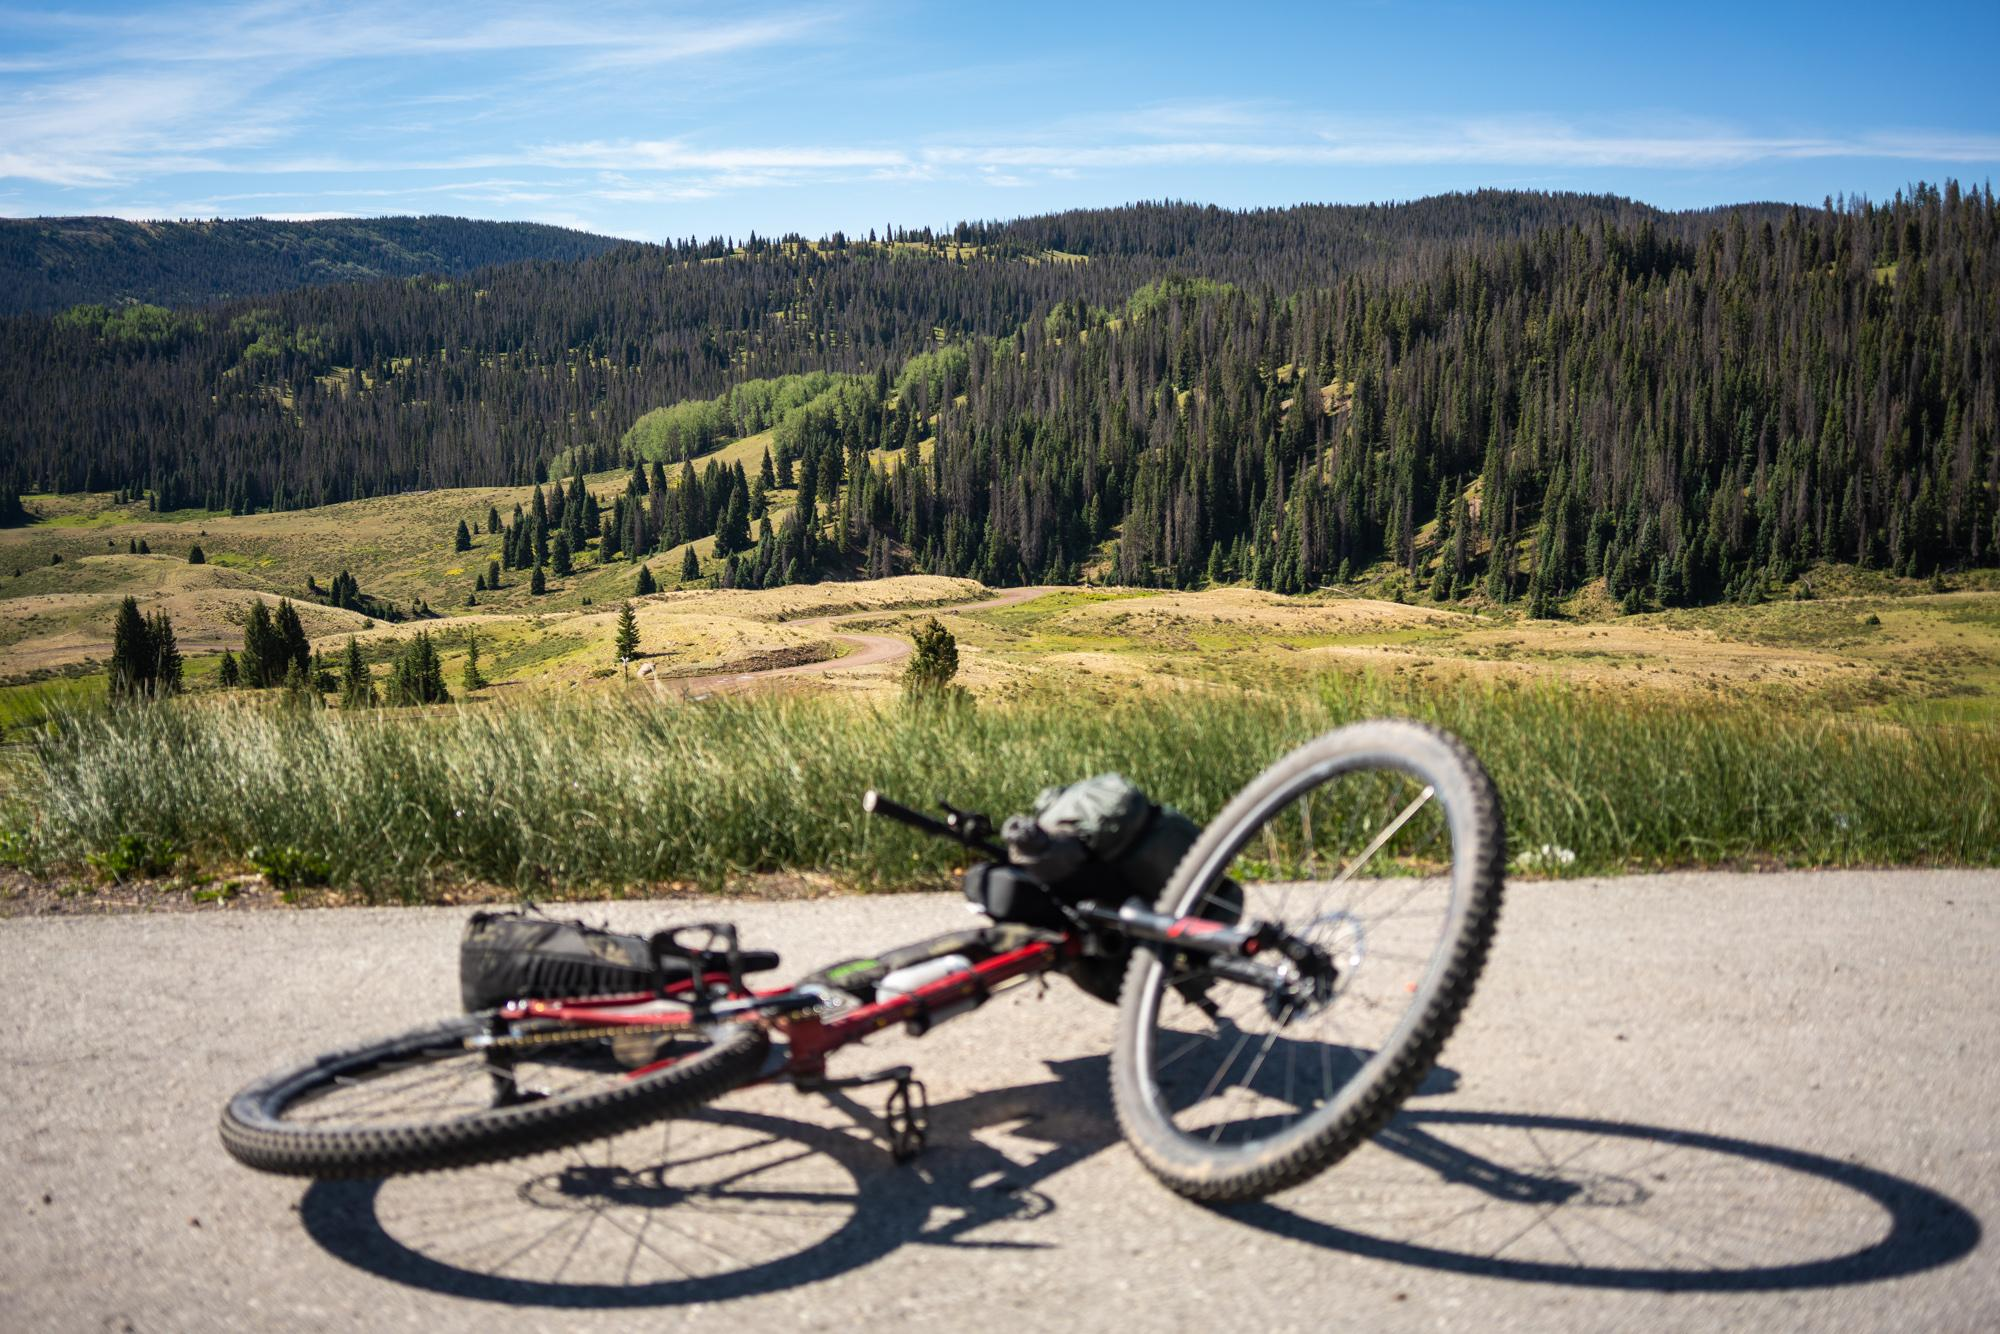 Dropping in from Cumbres Pass